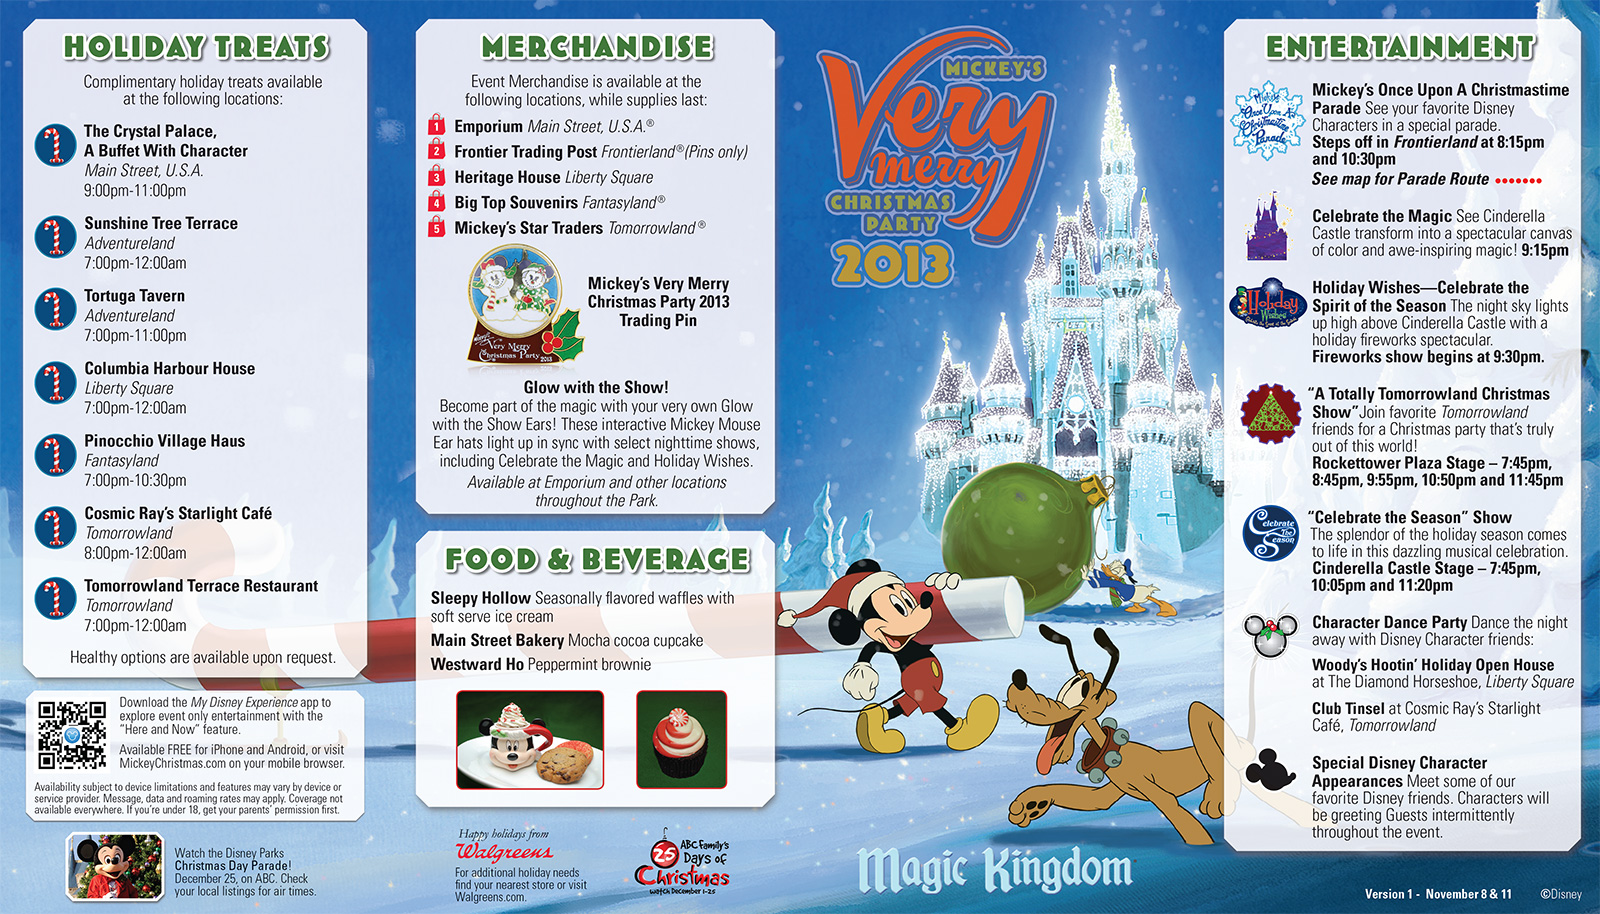 Mickey's Very Merry Christmas Party 2013 guide map - Photo 1 of 2